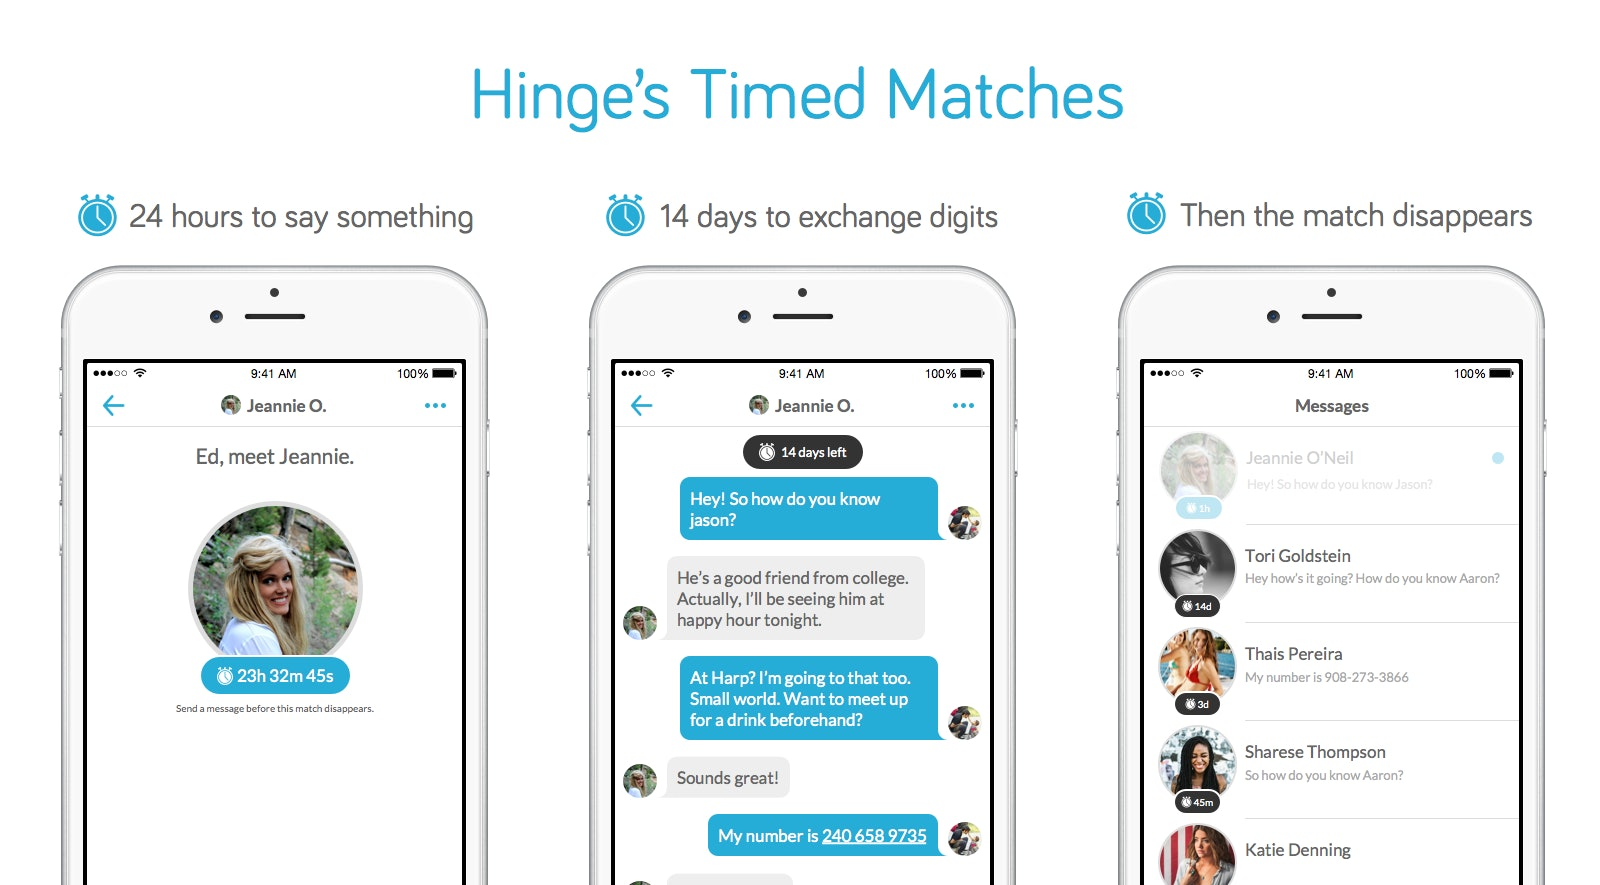 Hinge matches